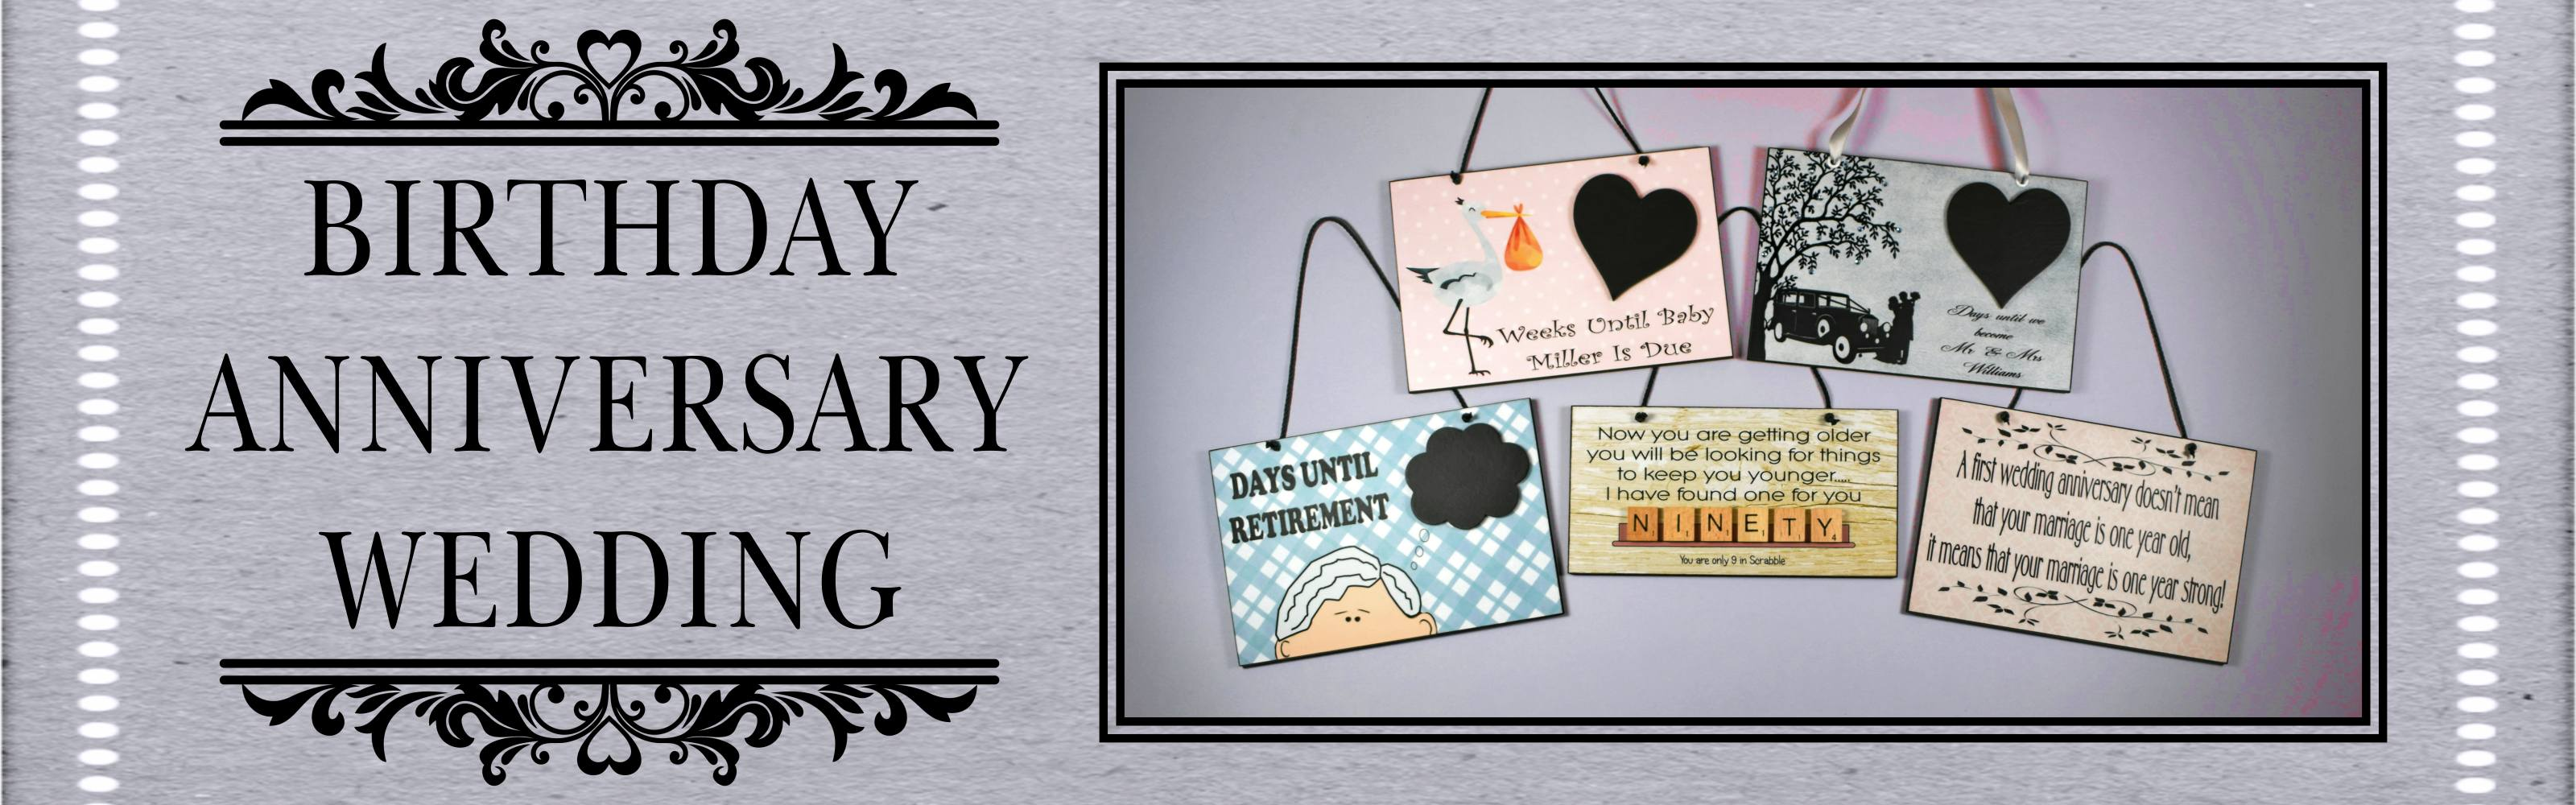 birthday wedding anniversary plaques